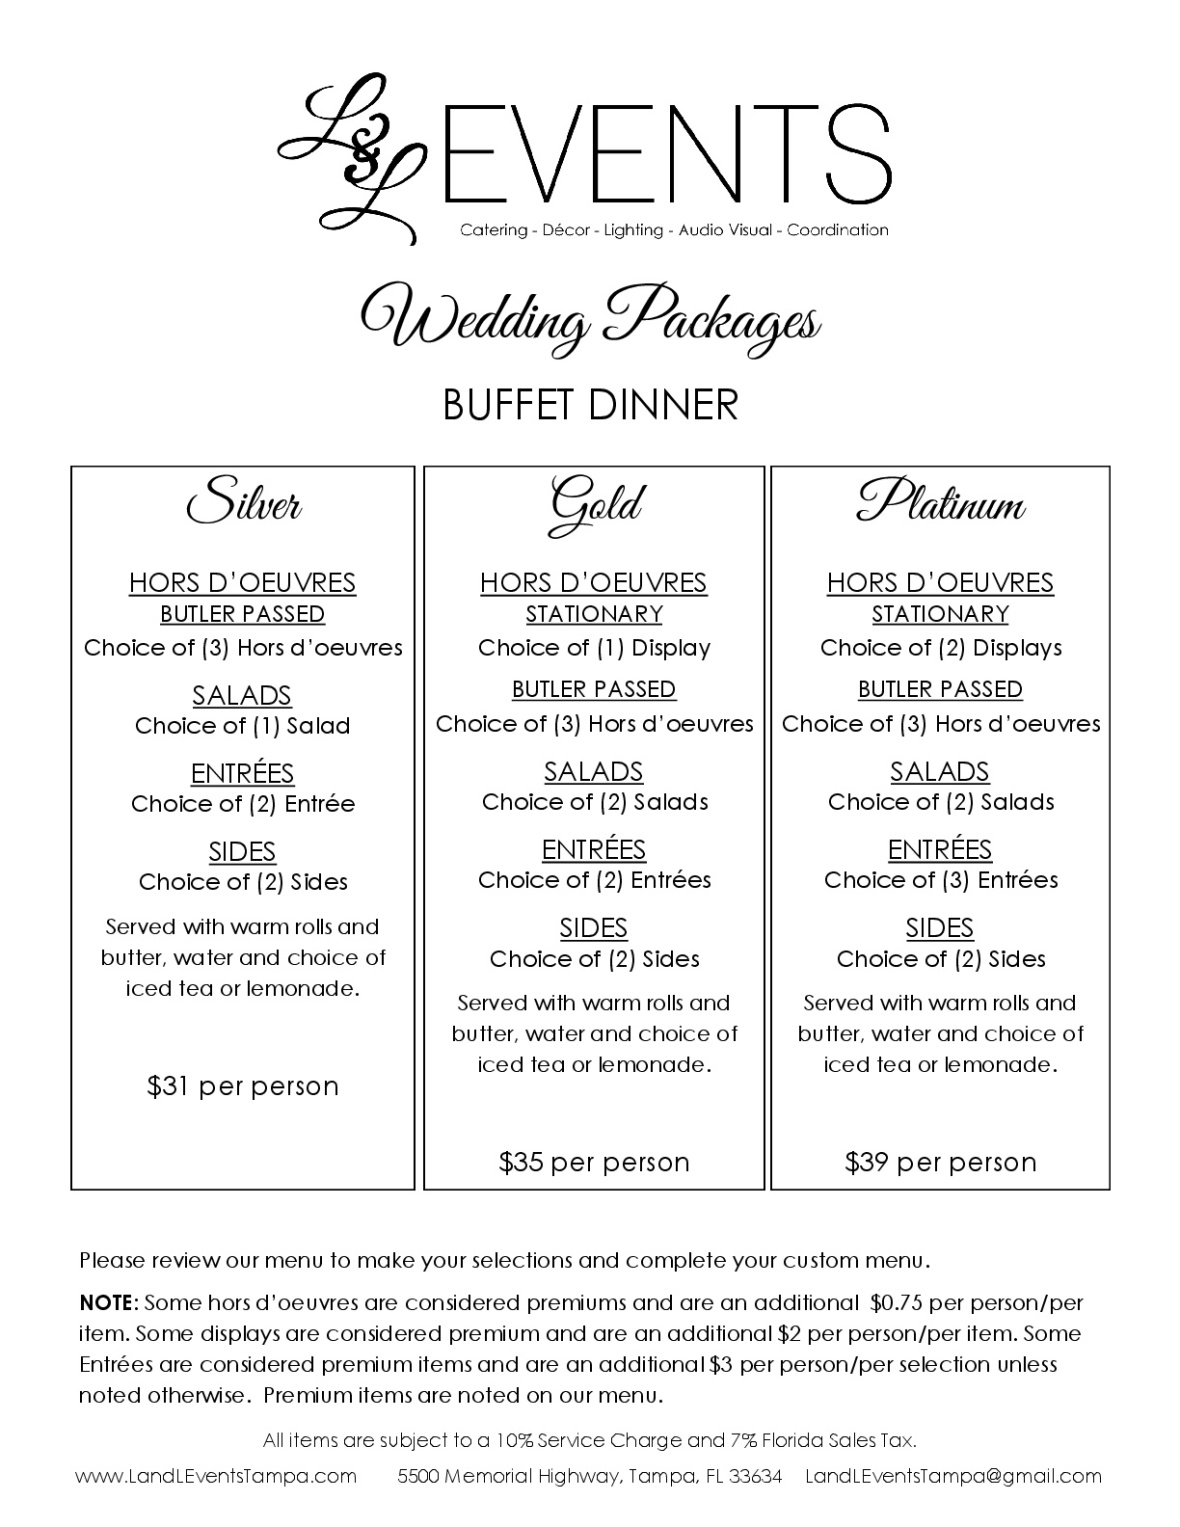 ll-events-2016-wedding-menu-packages-003